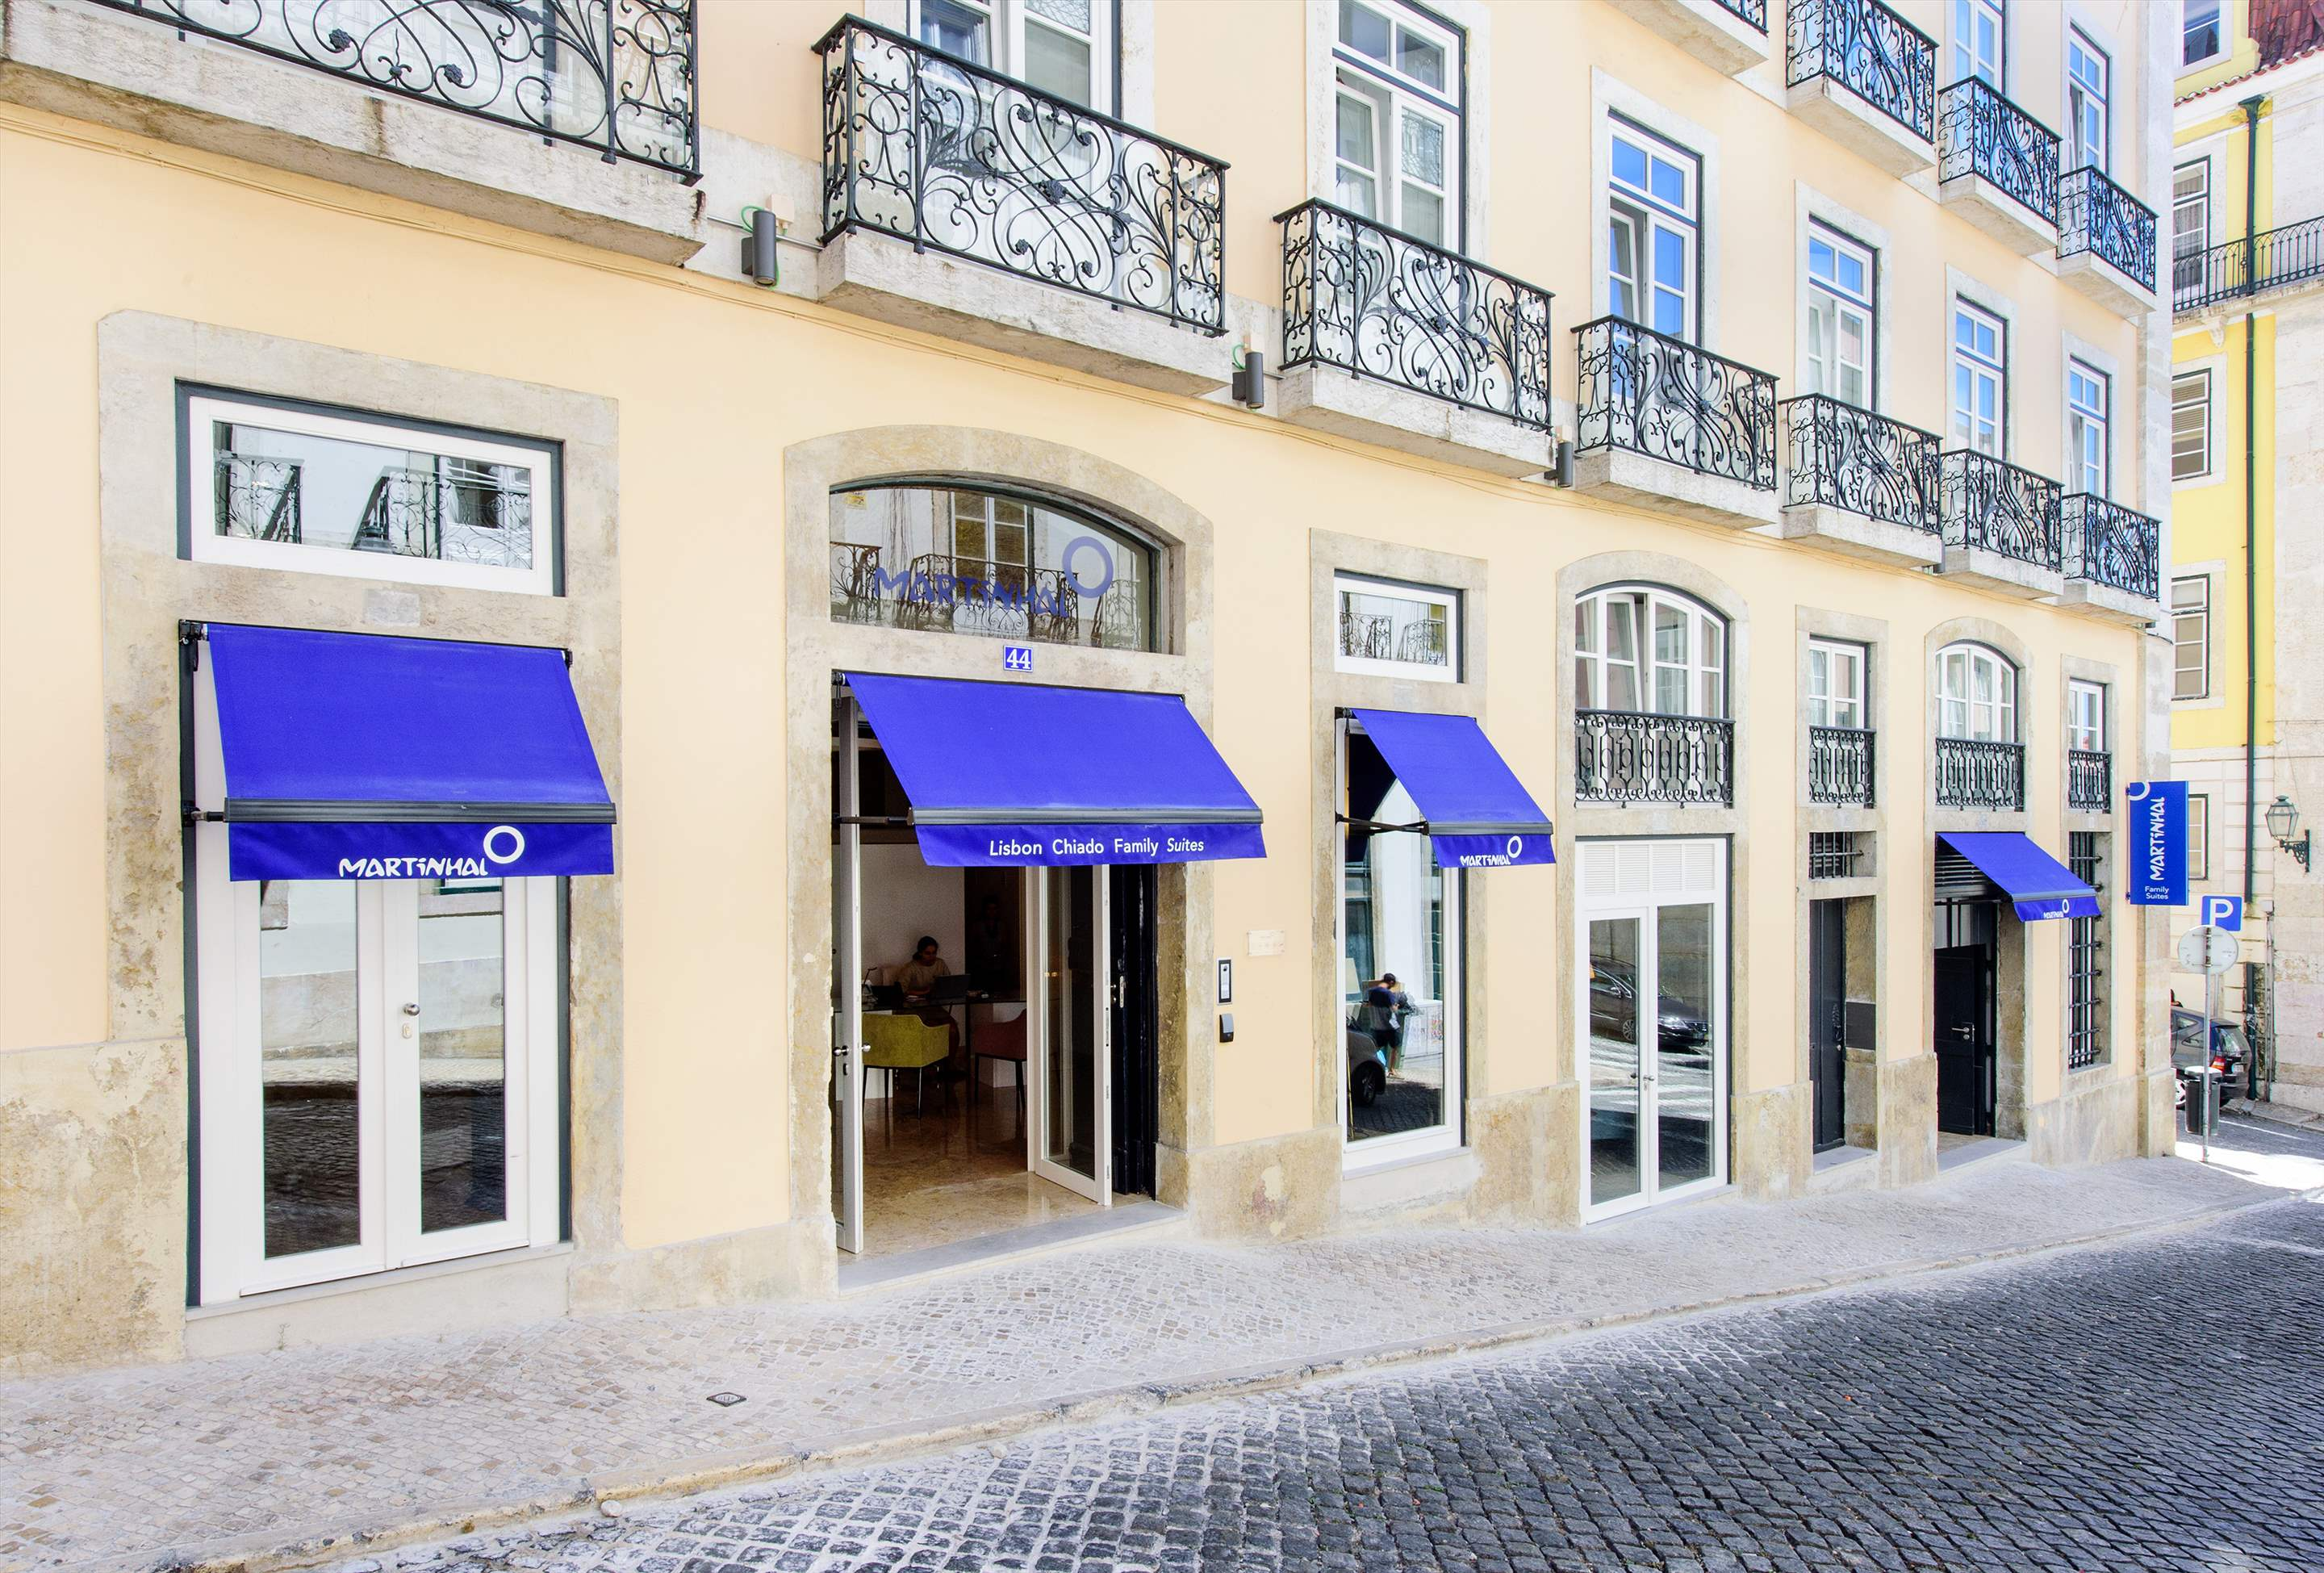 Martinhal Chiado Family Suites, Superior Deluxe Studio with bunkbed, 1 bedroom apartment in Lisbon Coast, Lisbon Photo #9